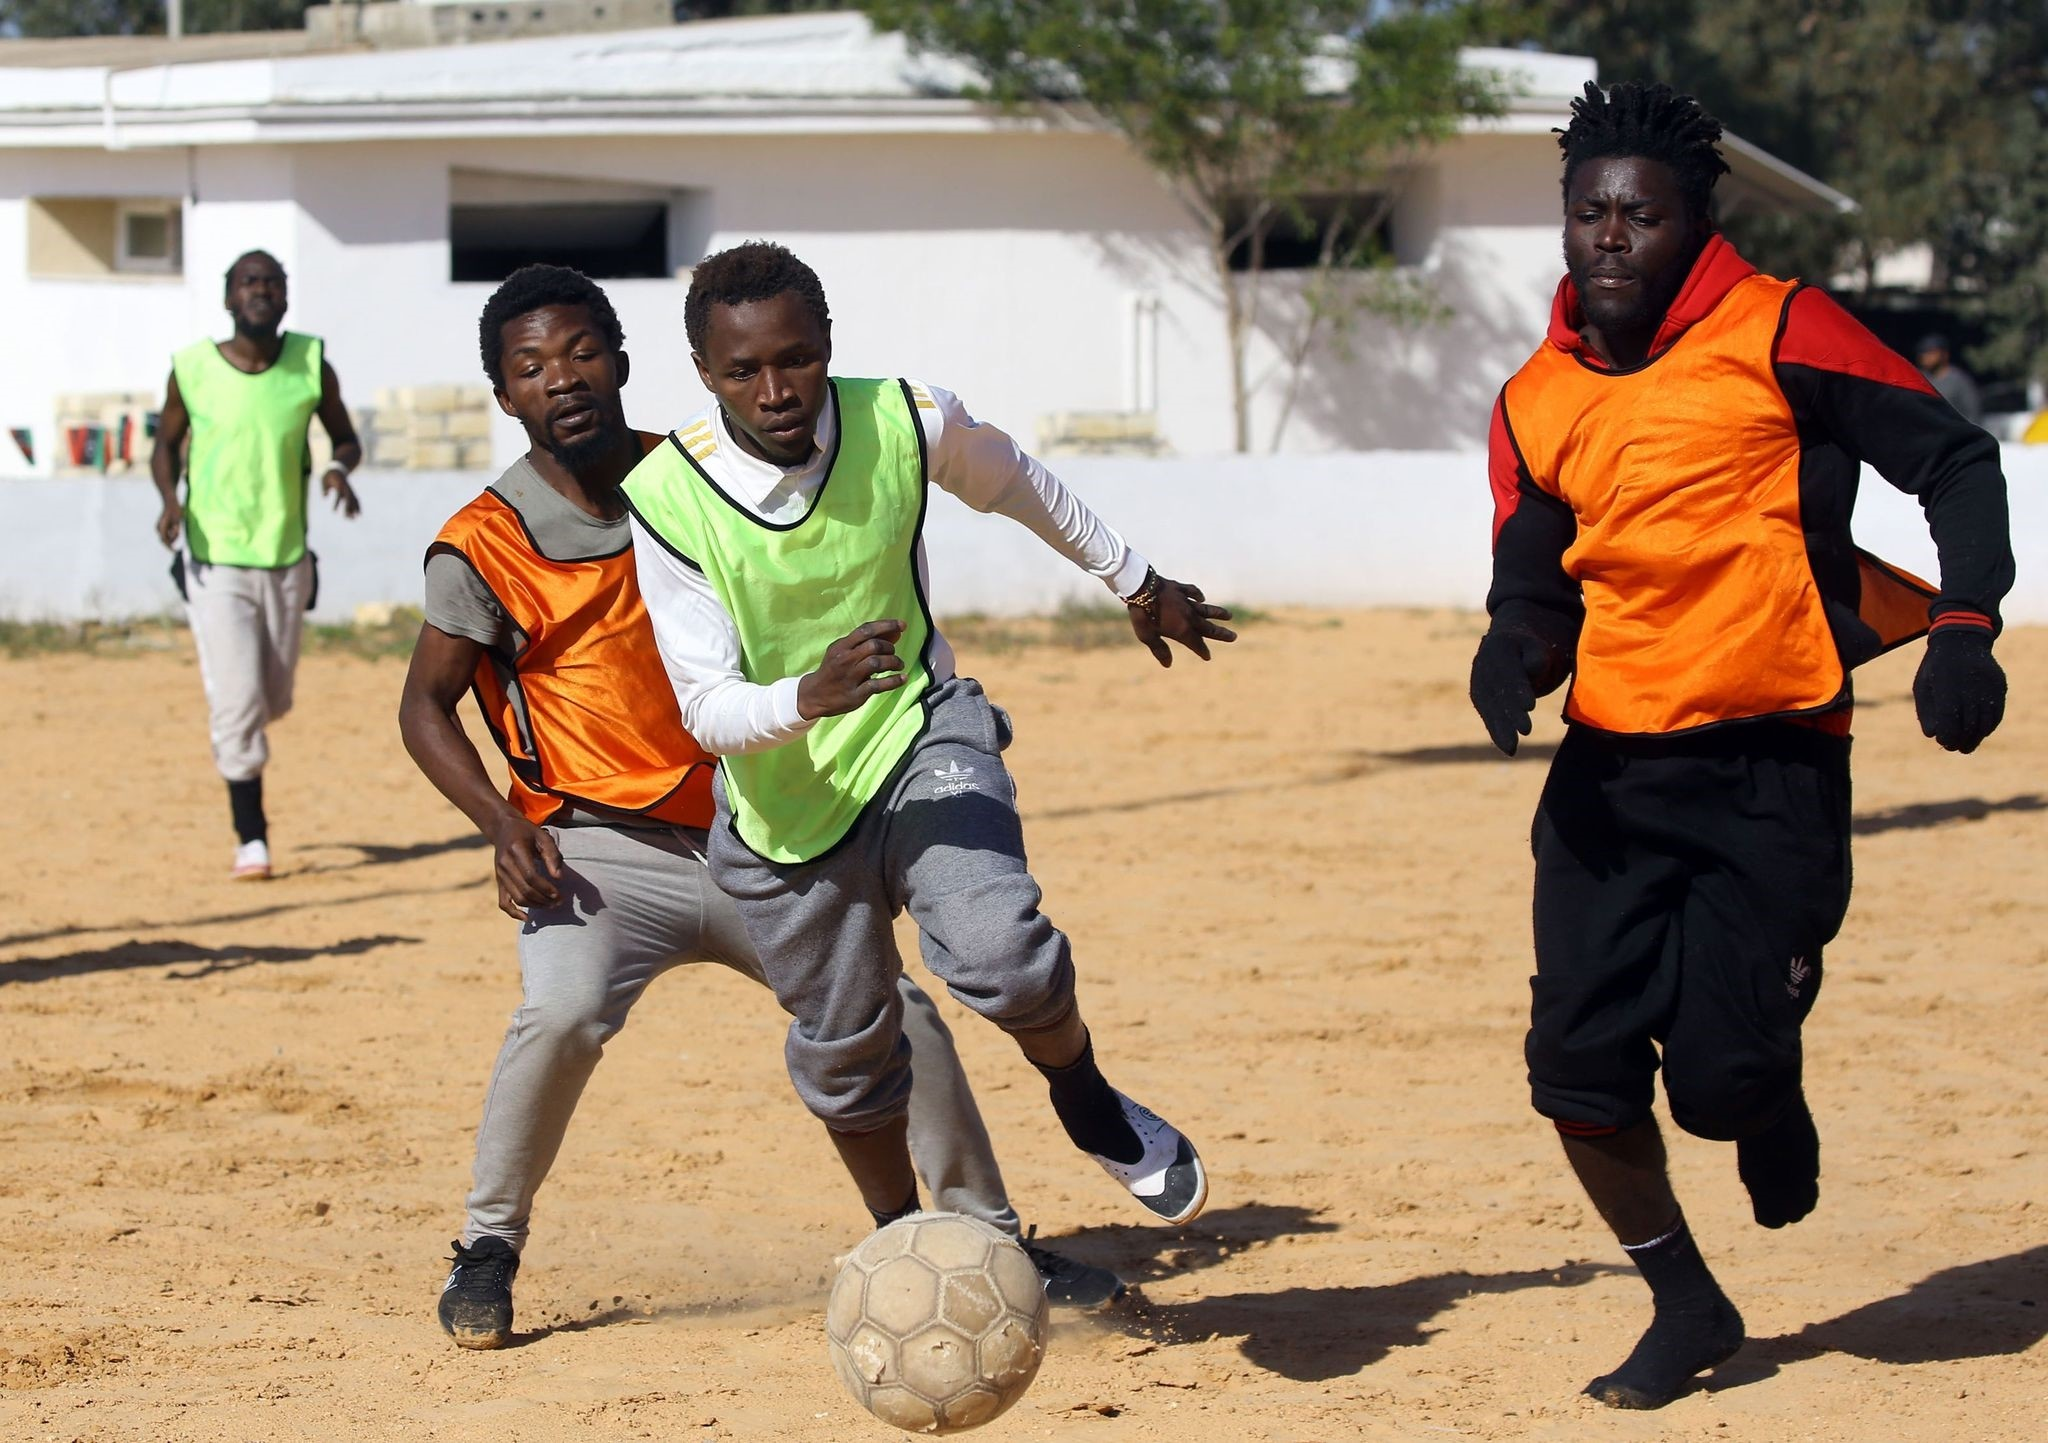 Cameroonian (orange) and Senegalese (yellow) African migrants, split into two teams for a football match at the Libyan Interior Ministryu2019s illegal migration shelter in Tajoura.